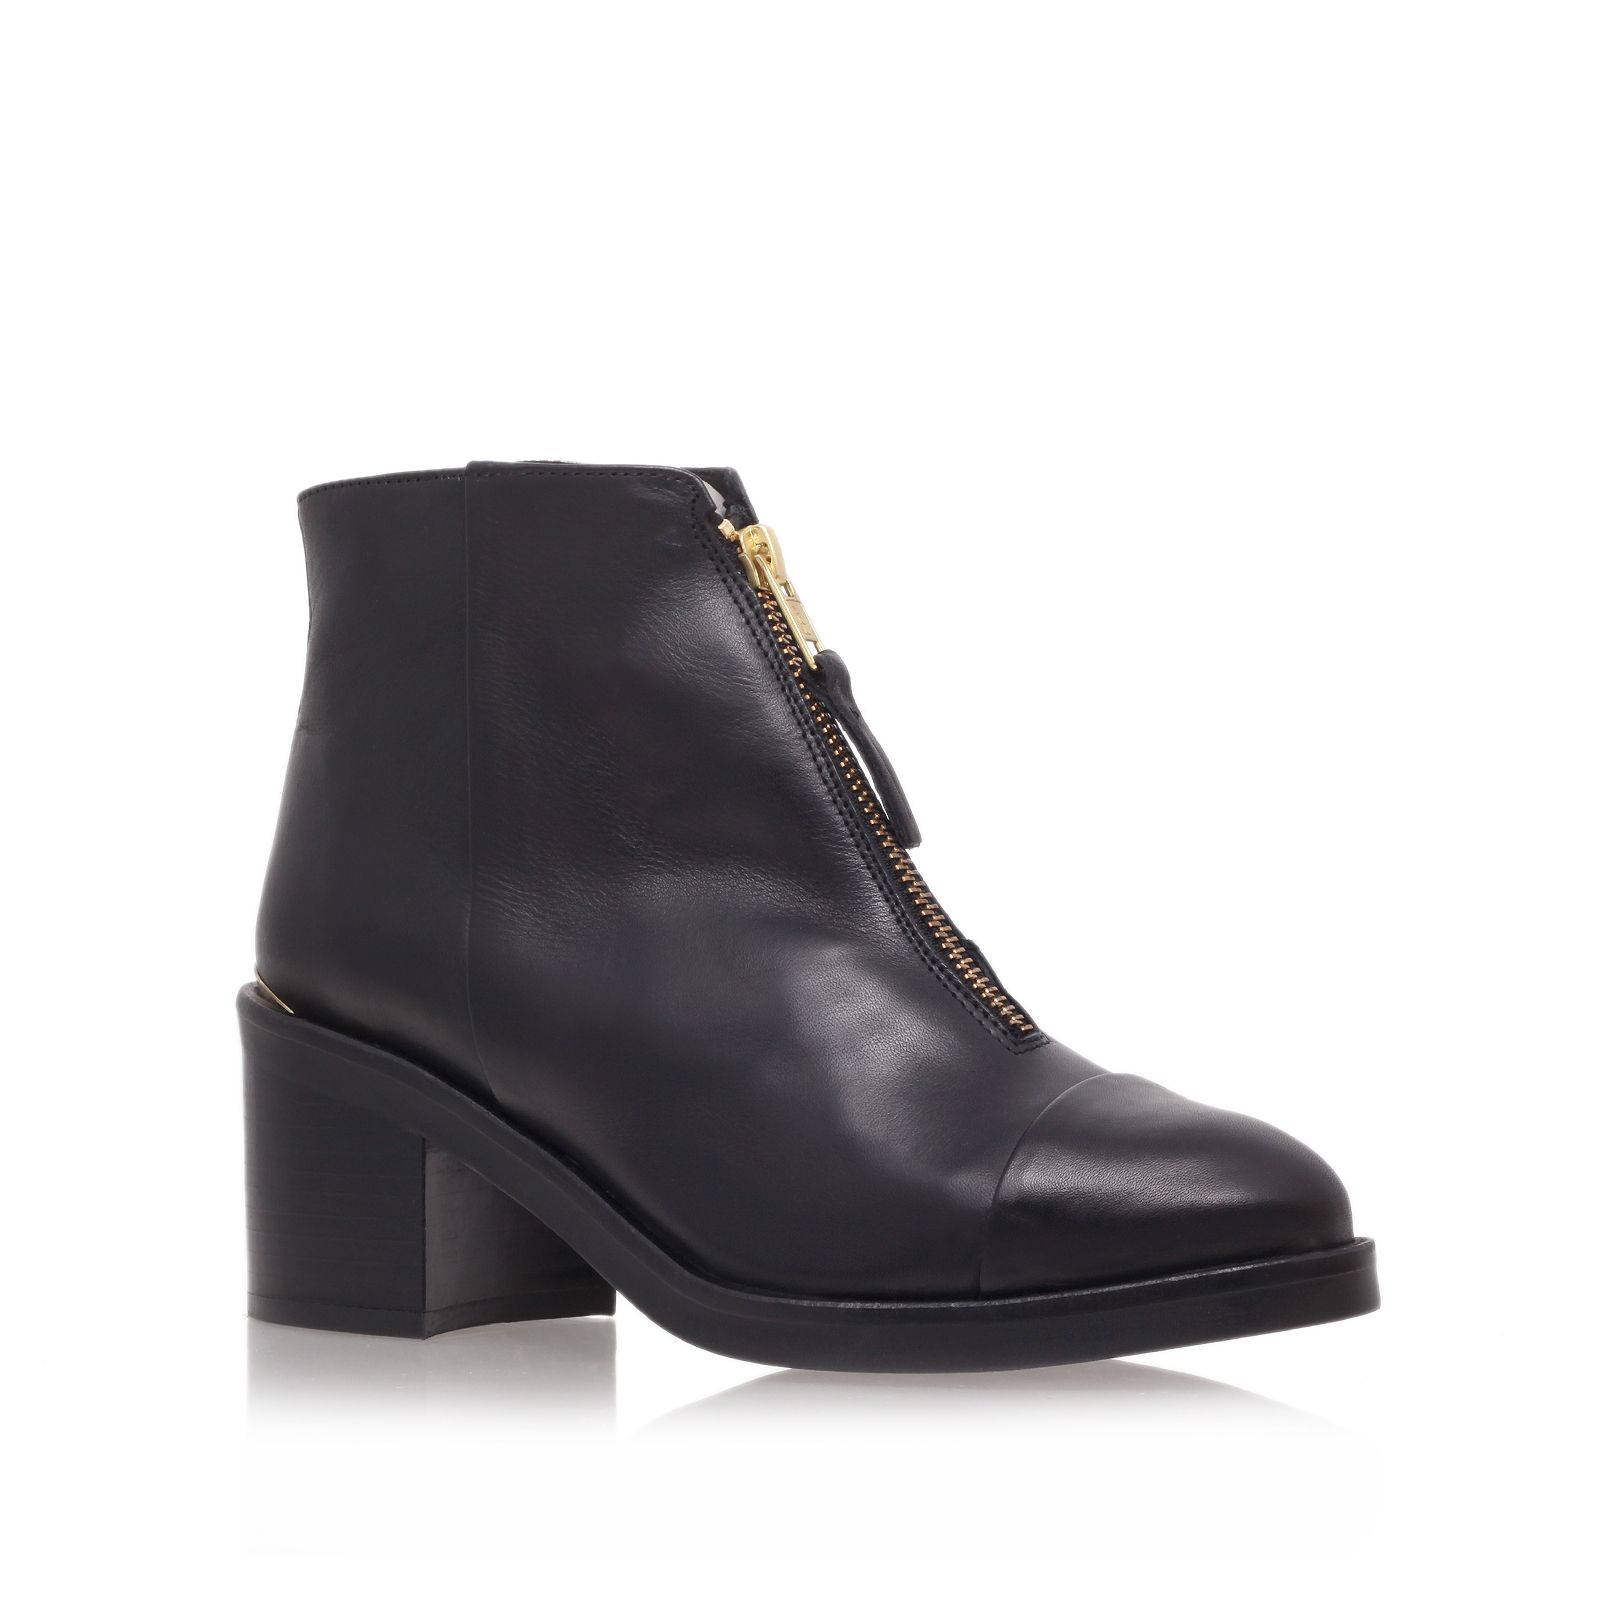 Spencer mid heel ankle boots